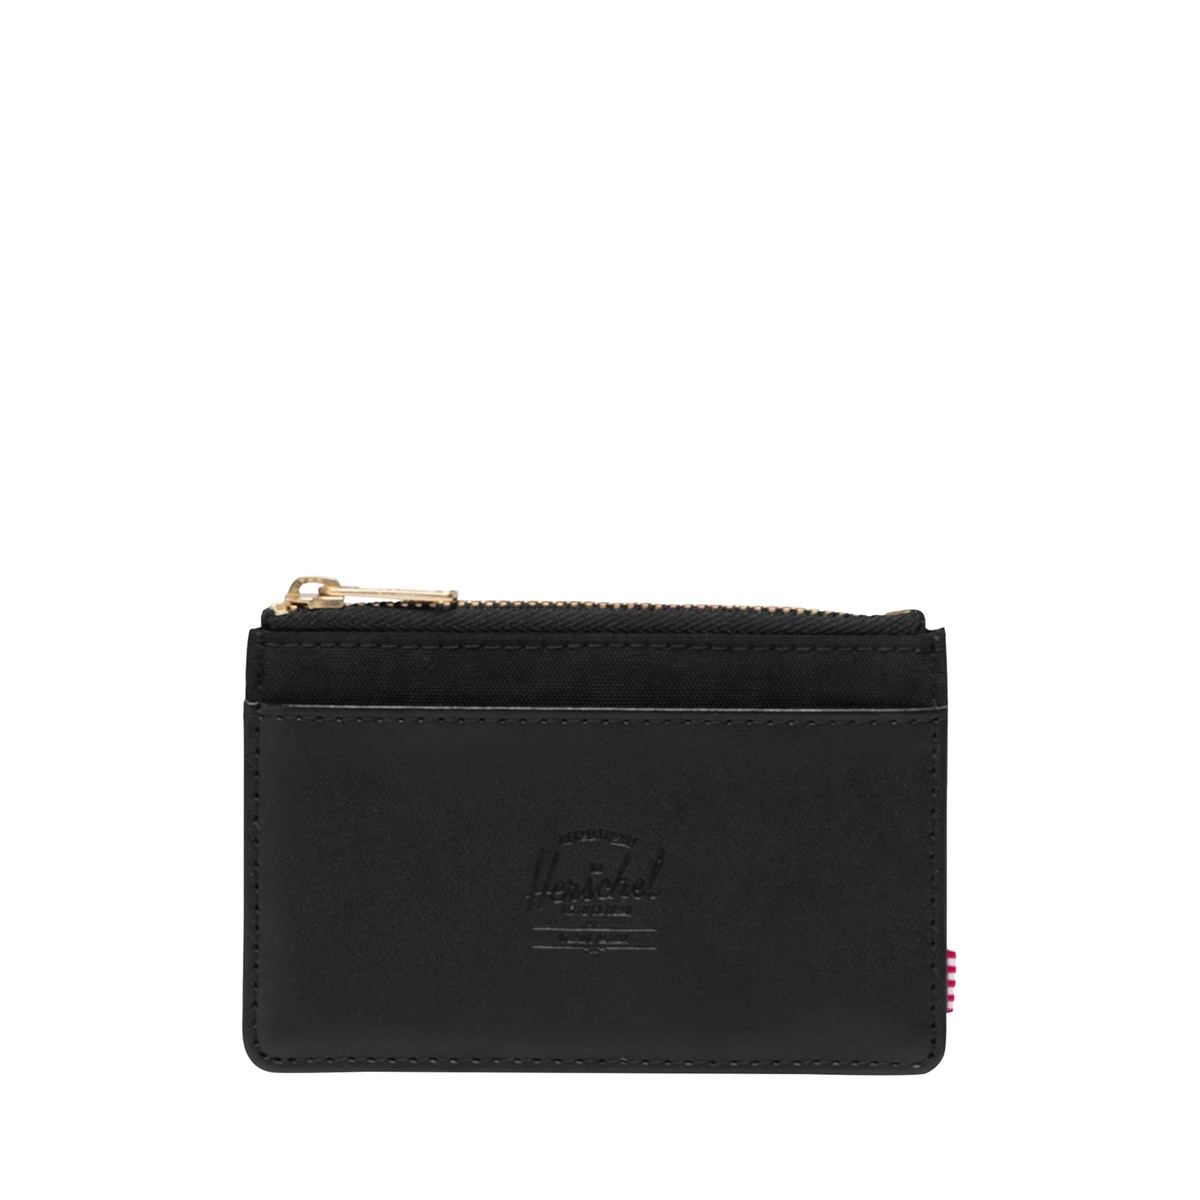 Oscar Orion Wallet in Black